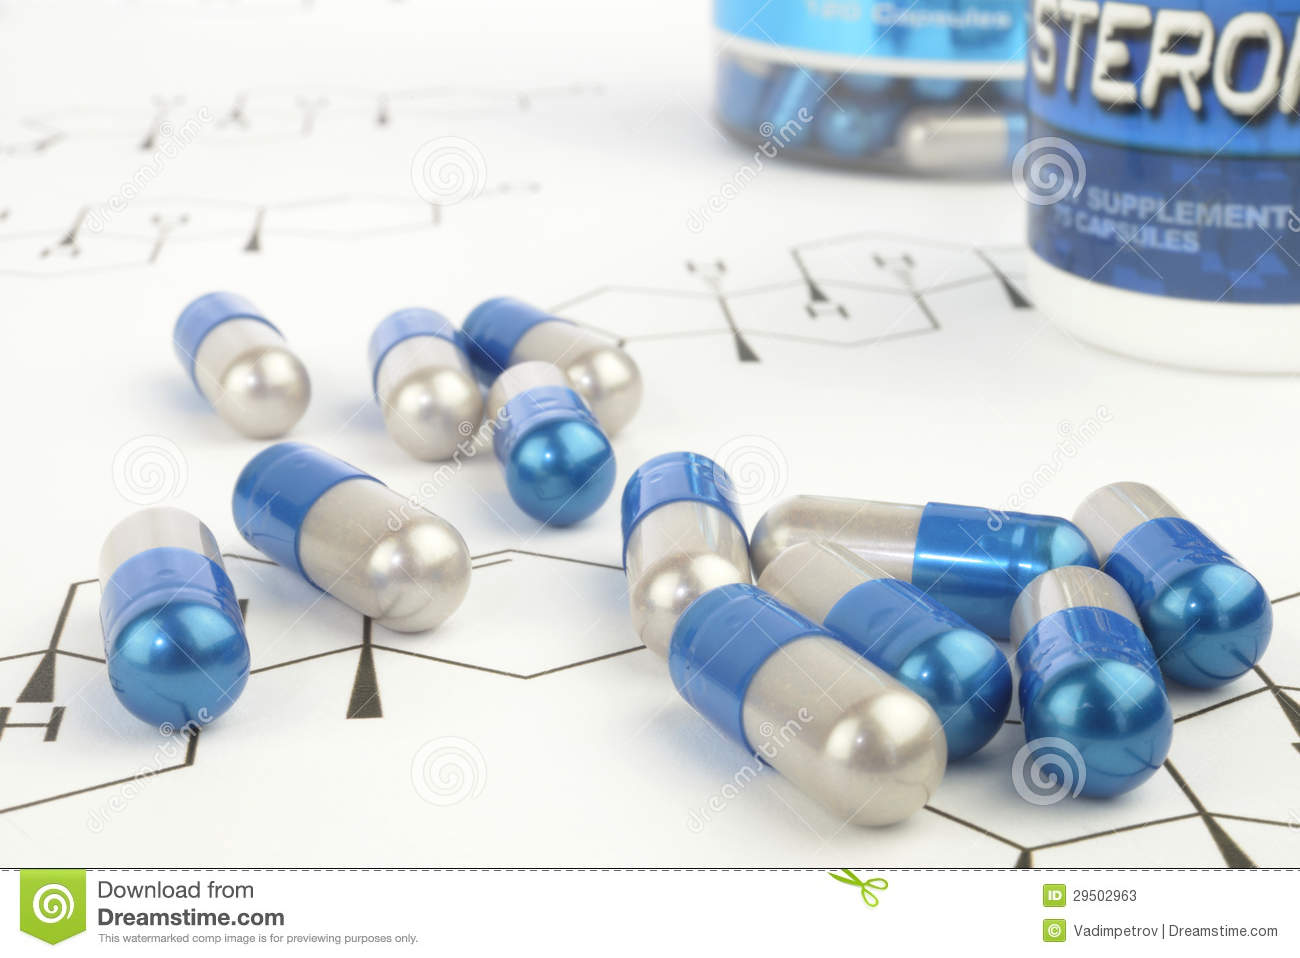 Anabolic Steroid Pills Stock Photos - Image: 29502963